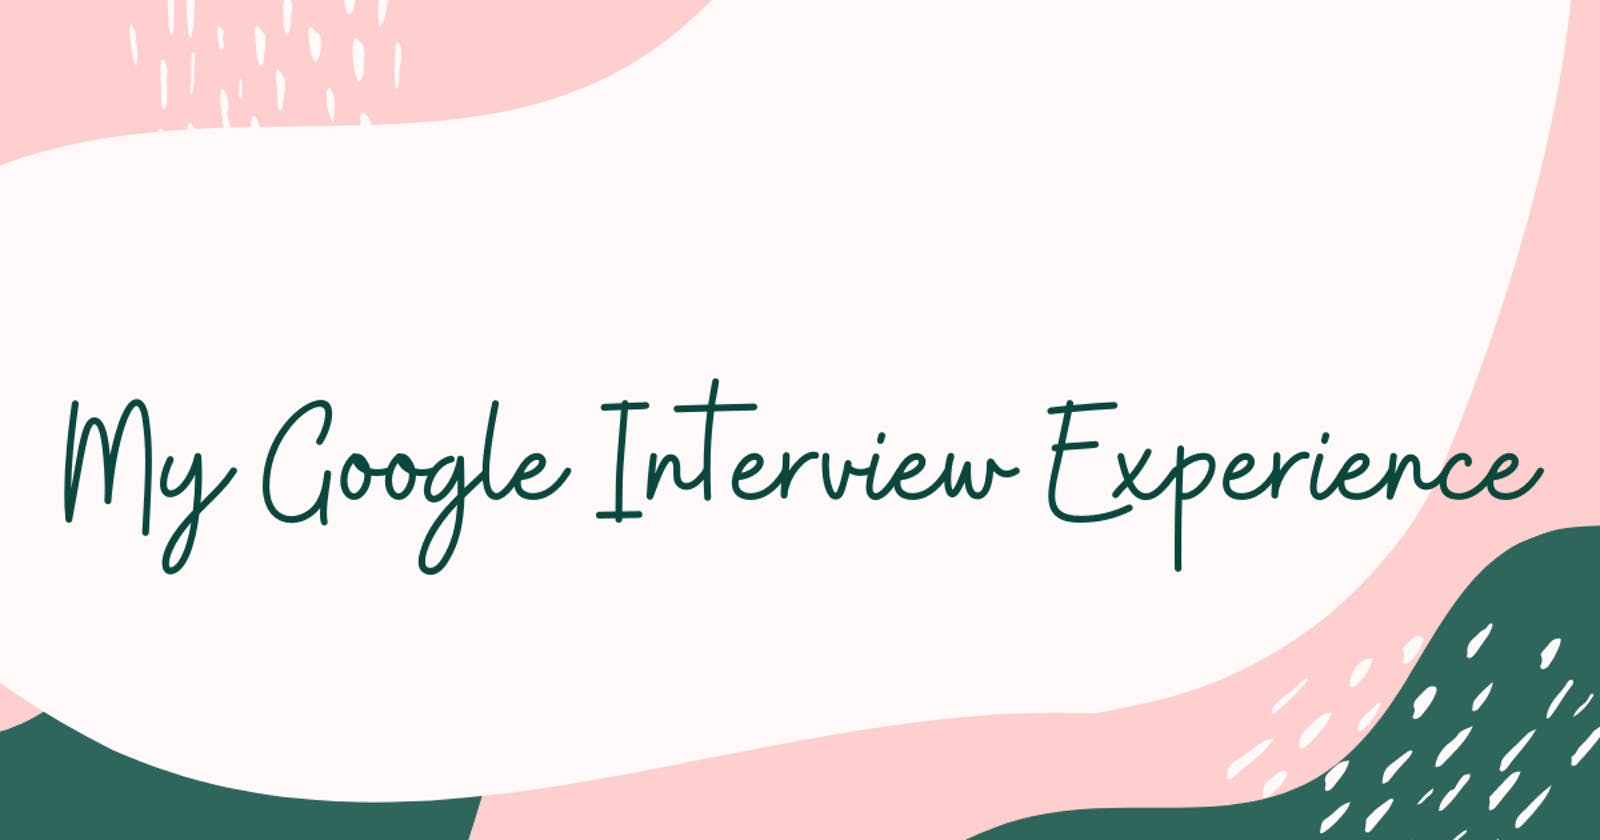 My Google Interview Experience